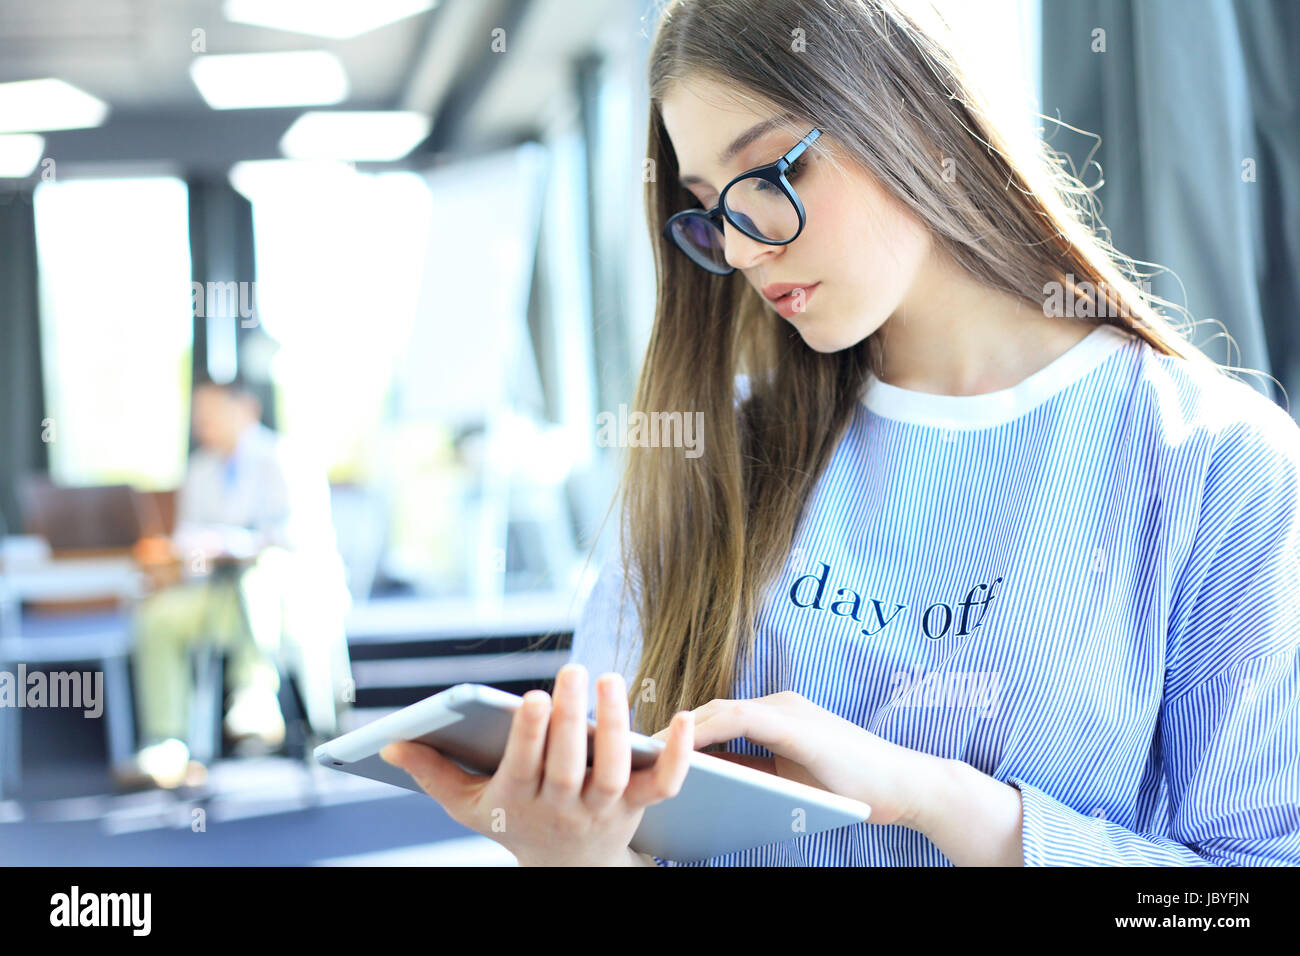 Attractive businesswoman working on a digital tablet in the office - Stock Image